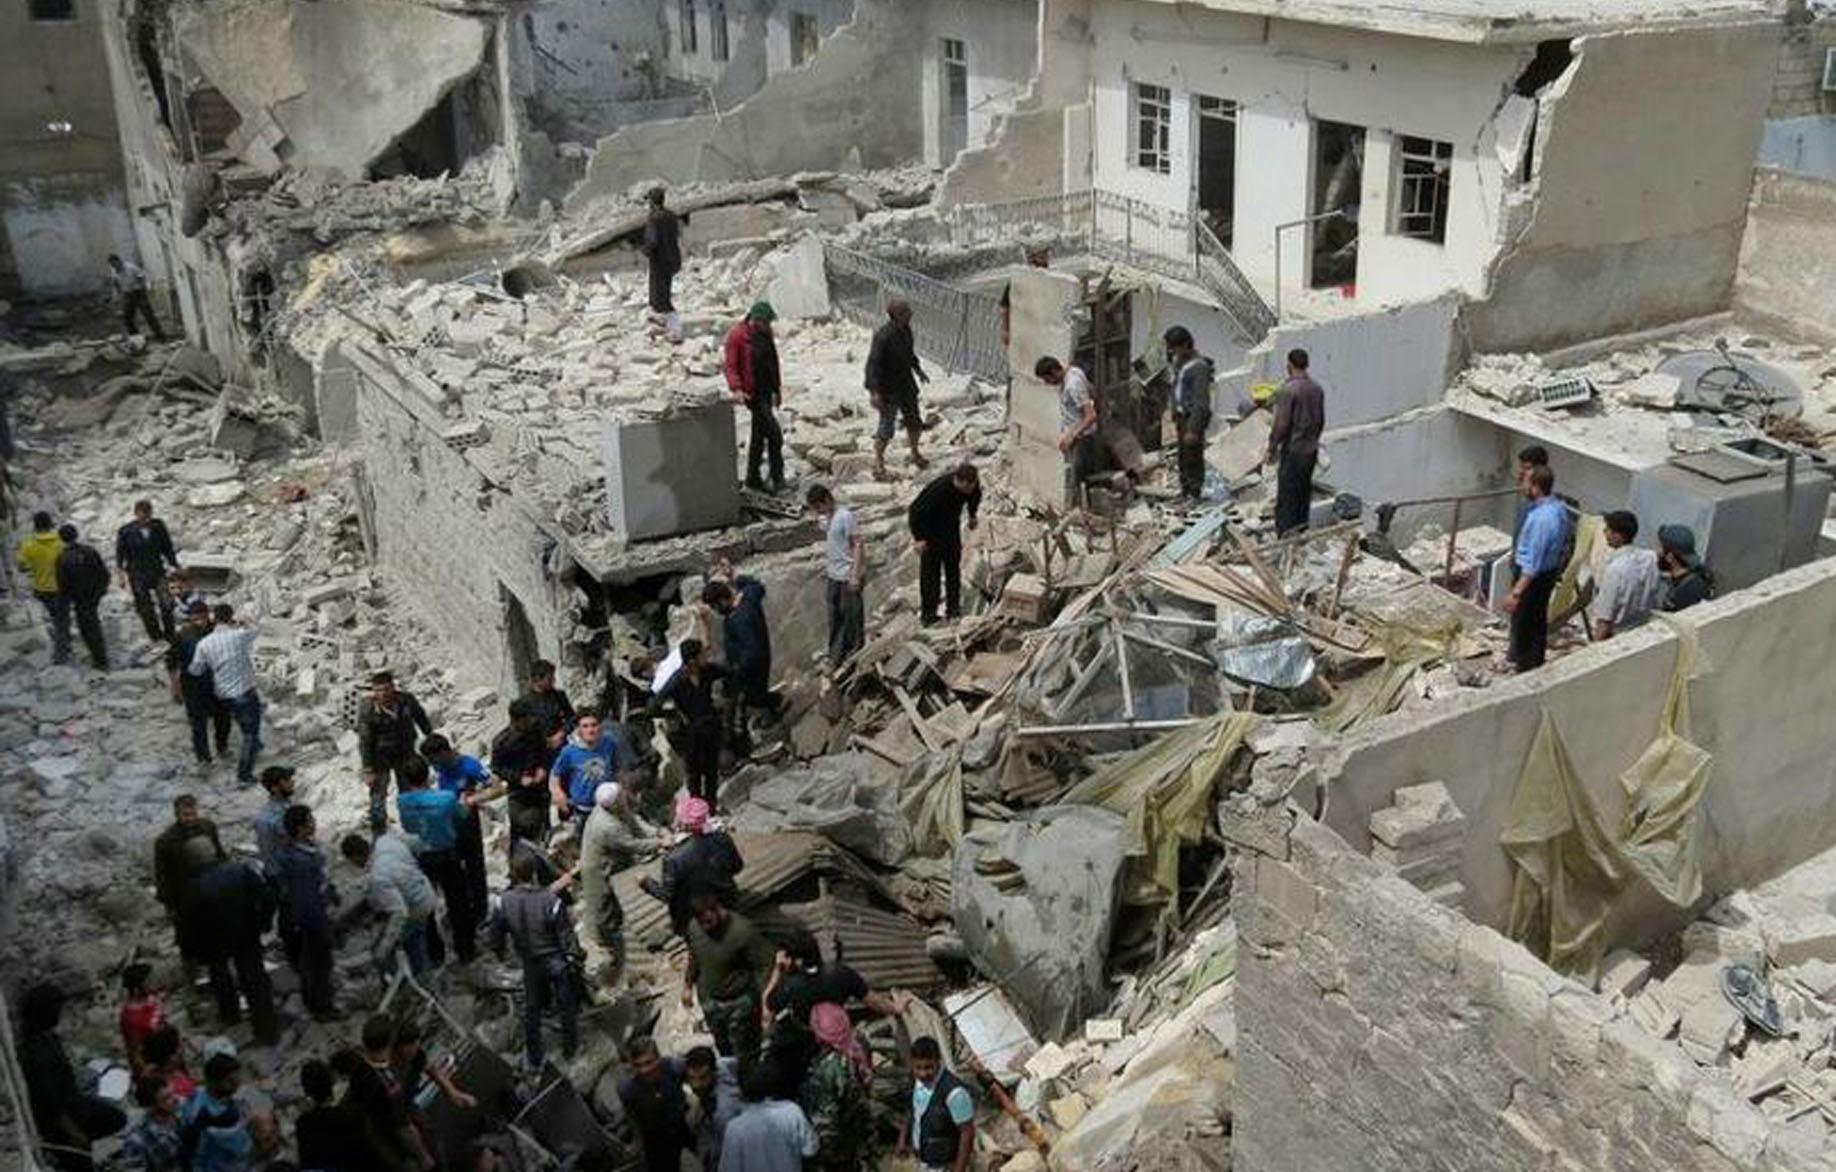 In citizen journalism image provided by Aleppo Media Center AMC which has been authenticated based on its contents and other AP reporting, Syrian citizens stand on rubble of destroyed houses that were damaged by Syrian forces airstrike, in Aleppo, Syria, Monday April 15, 2013. Syrian activists say government warplanes have carried out airstrikes around the country. The exiled leader of Syria's Muslim Brotherhood denied Monday widespread accusations by other pro-rebel political factions that the group is seeking to impose its will on other members of the opposition.(AP Photo/Aleppo Media Center, AMC)